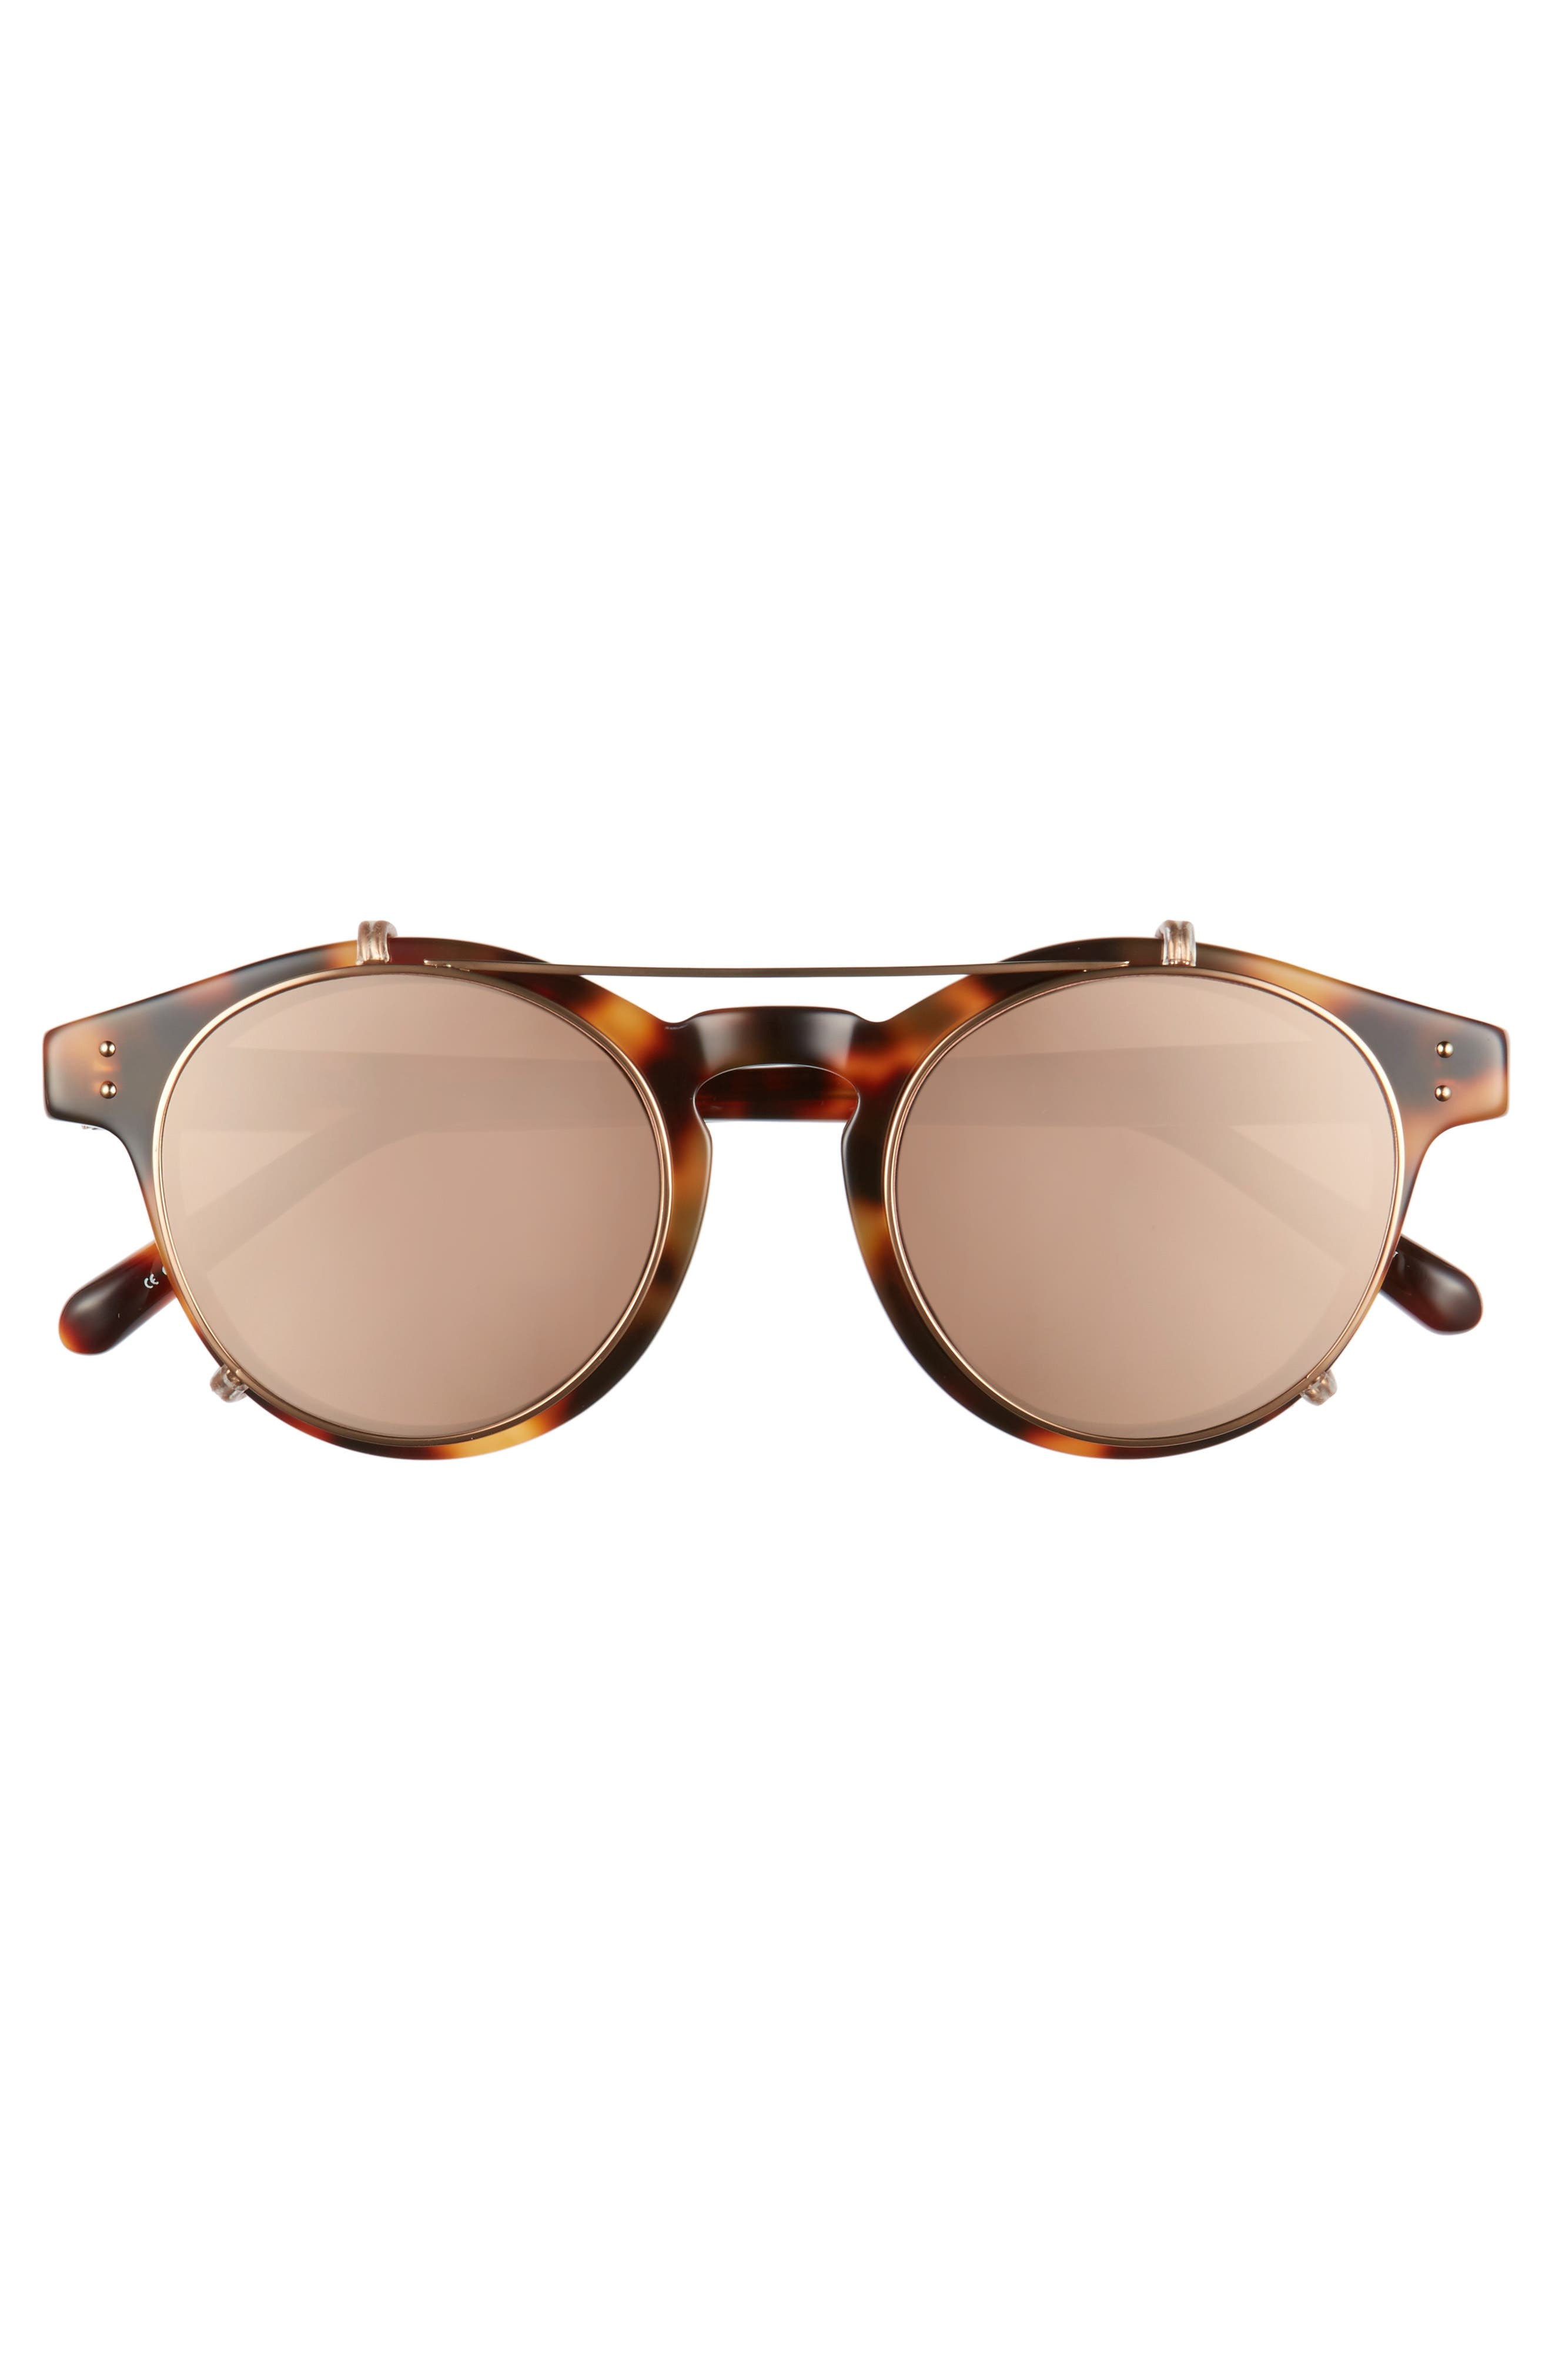 47mm Optical Glasses with Clip-On 18 Karat Rose Gold Trim Sunglasses,                             Alternate thumbnail 6, color,